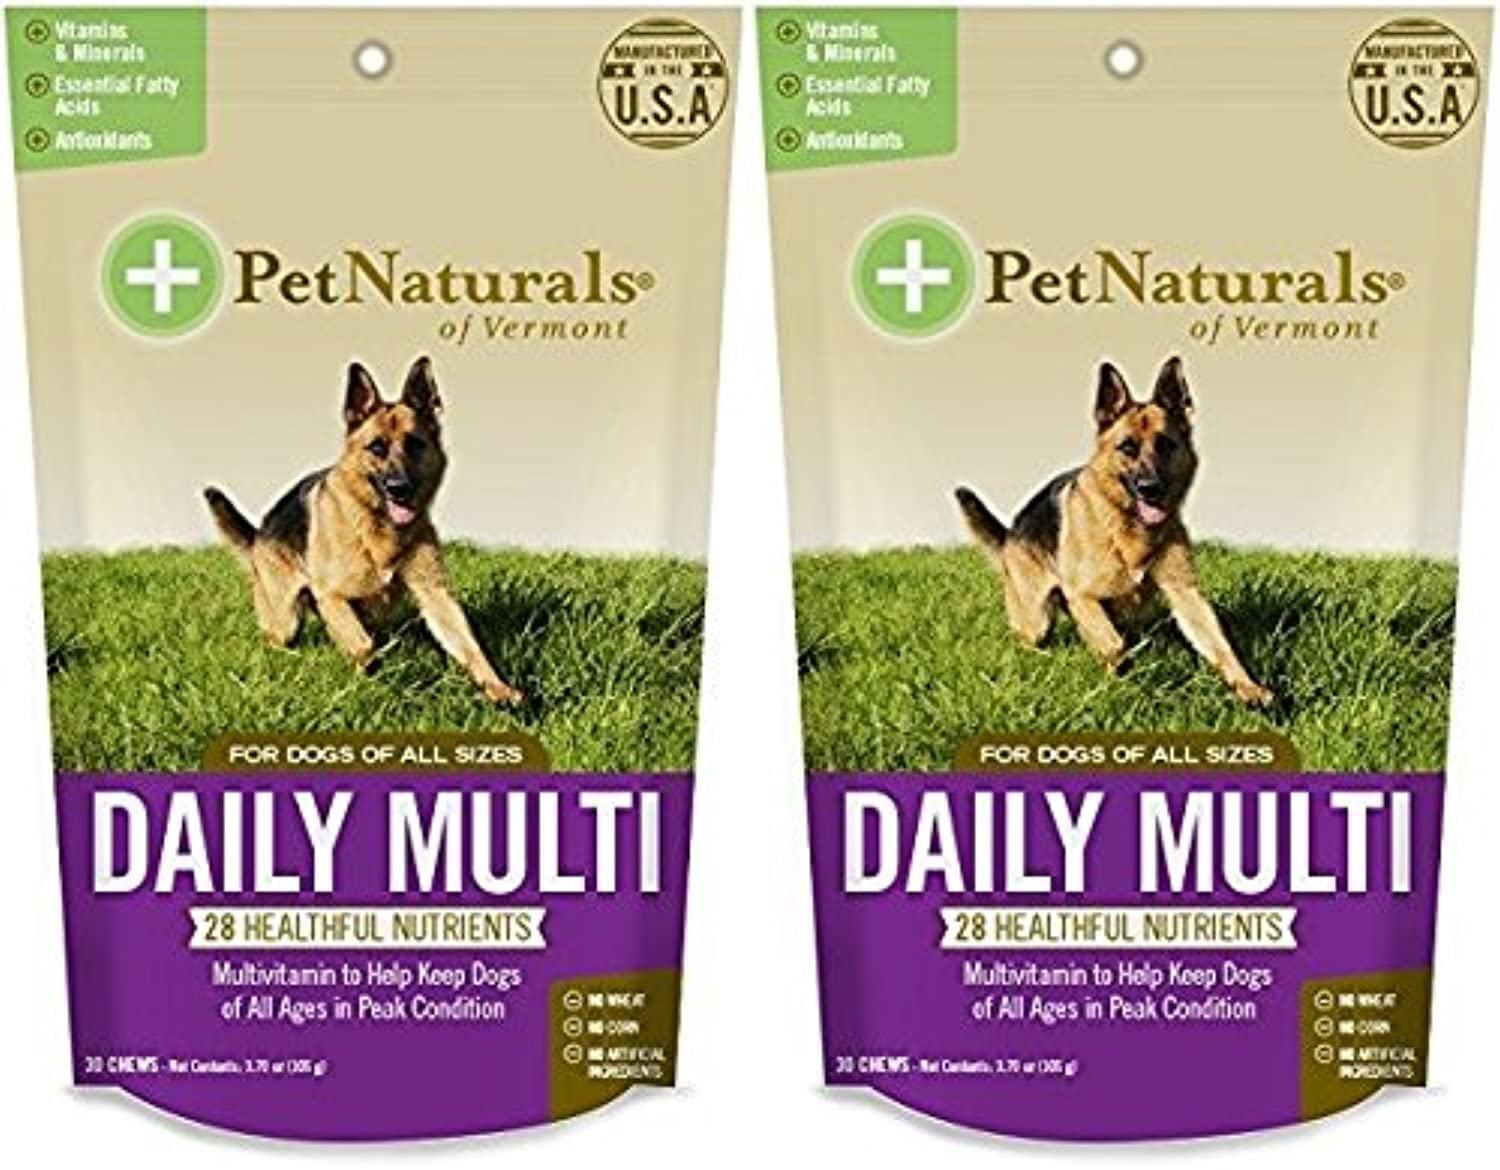 Daily Multi for Dogs, Multivitamin Chew Size Pack of 2